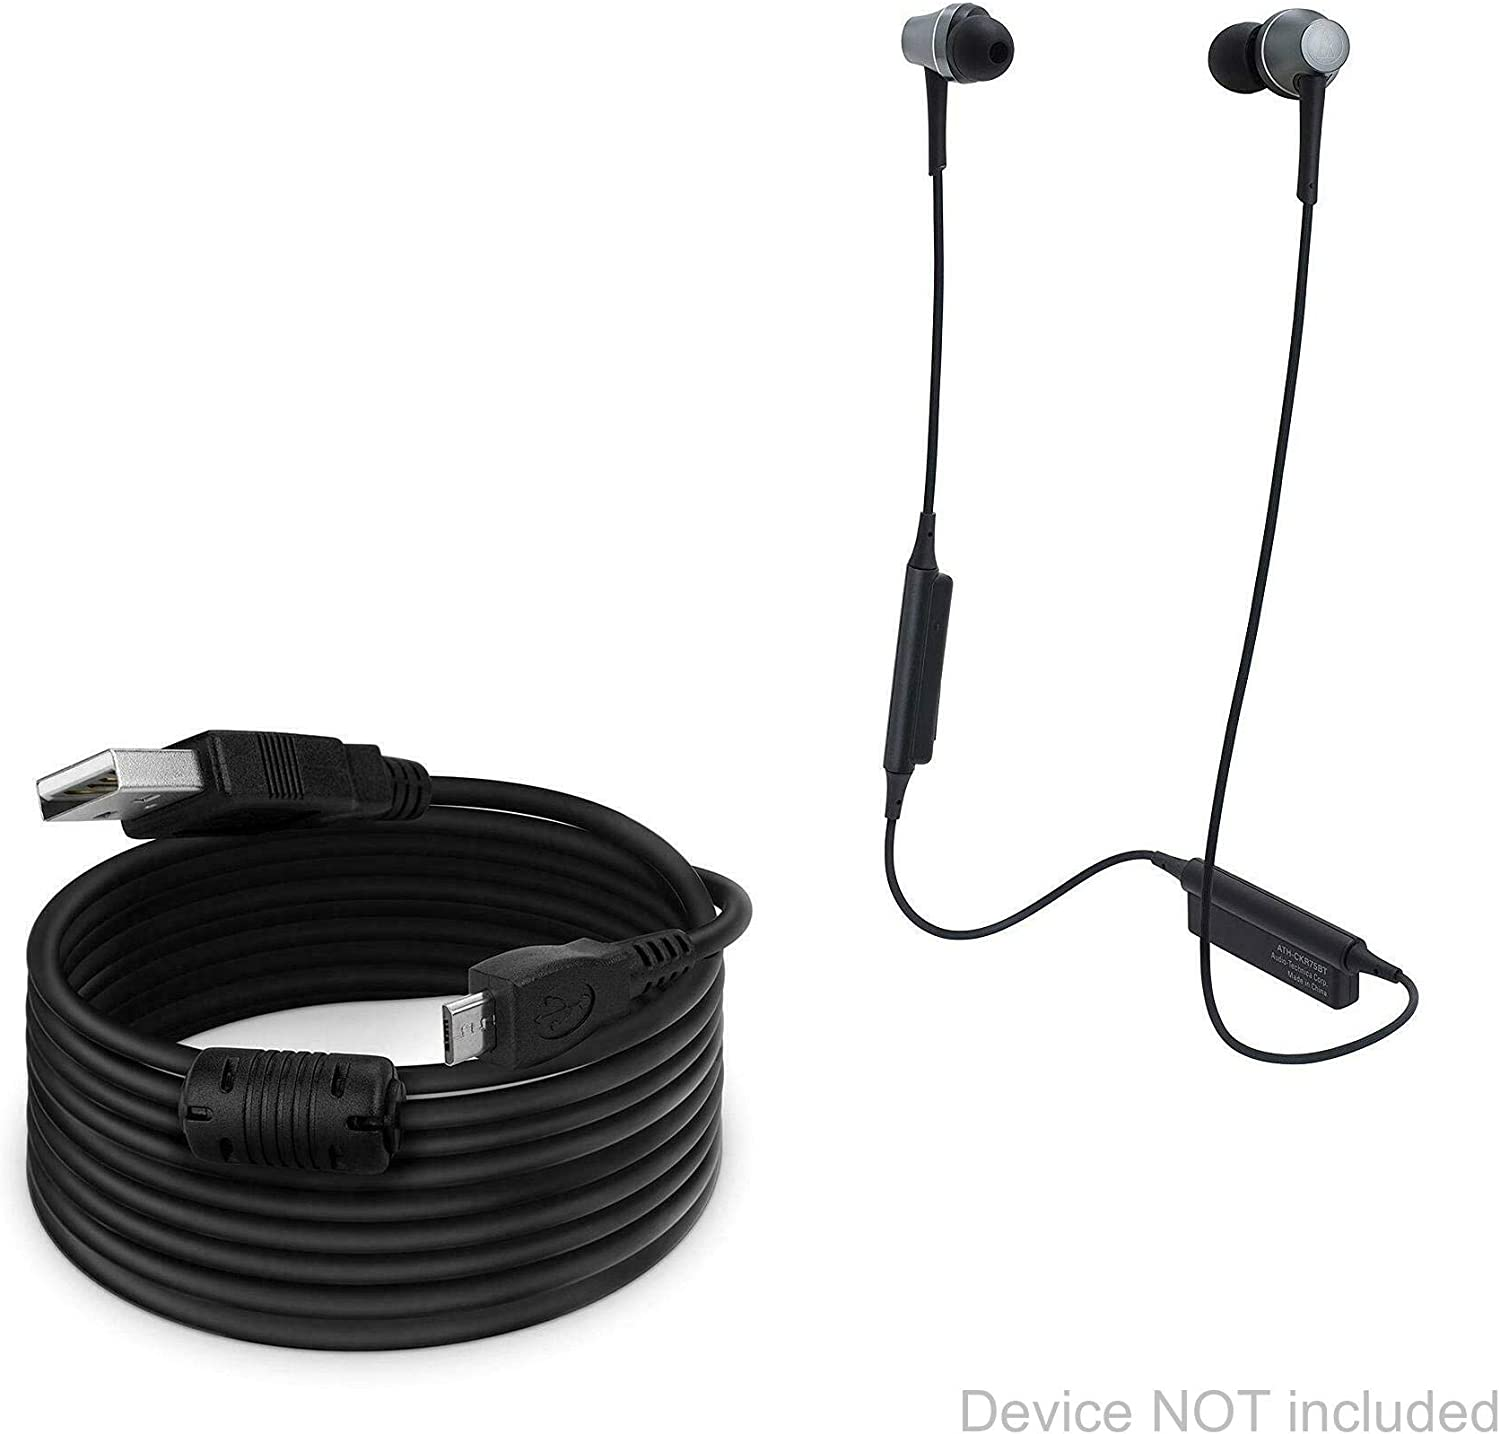 Black Extra Long Charge and Sync Cable for Audio-Technica ATH-CKR75BT 15 ft DirectSync BoxWave Audio-Technica ATH-CKR75BT Cable Cable